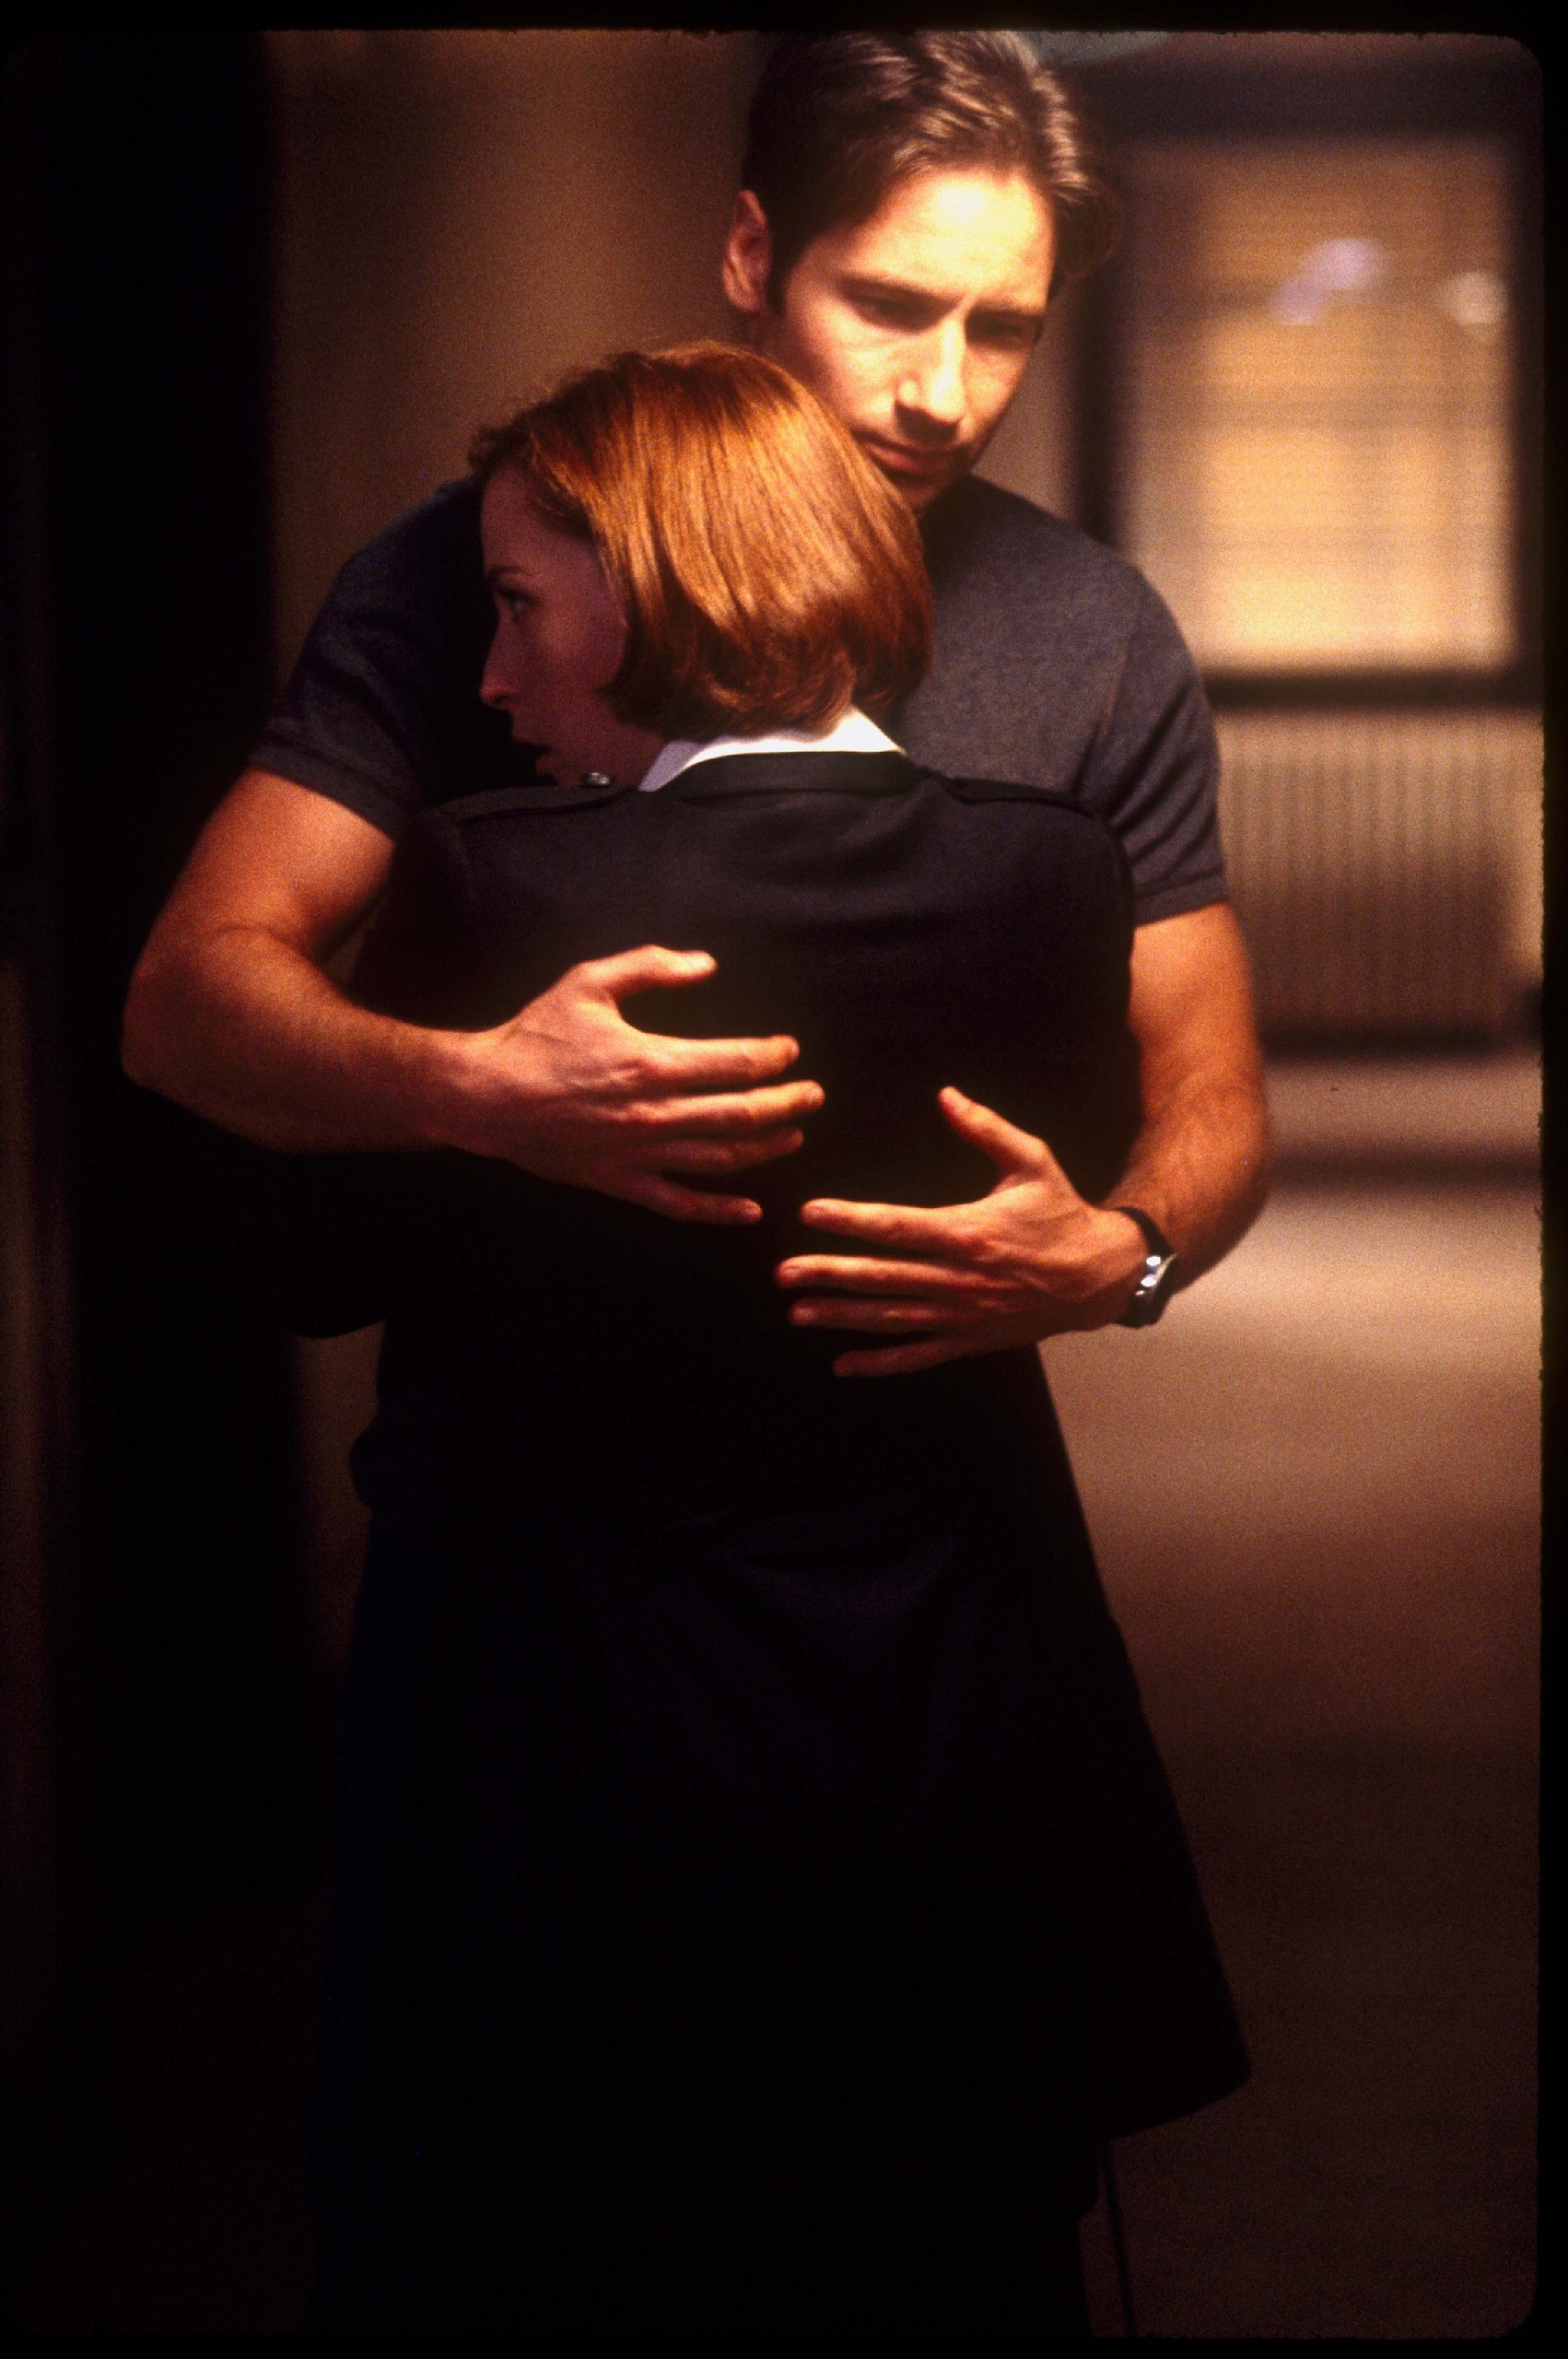 x files scully and mulder relationship wiki